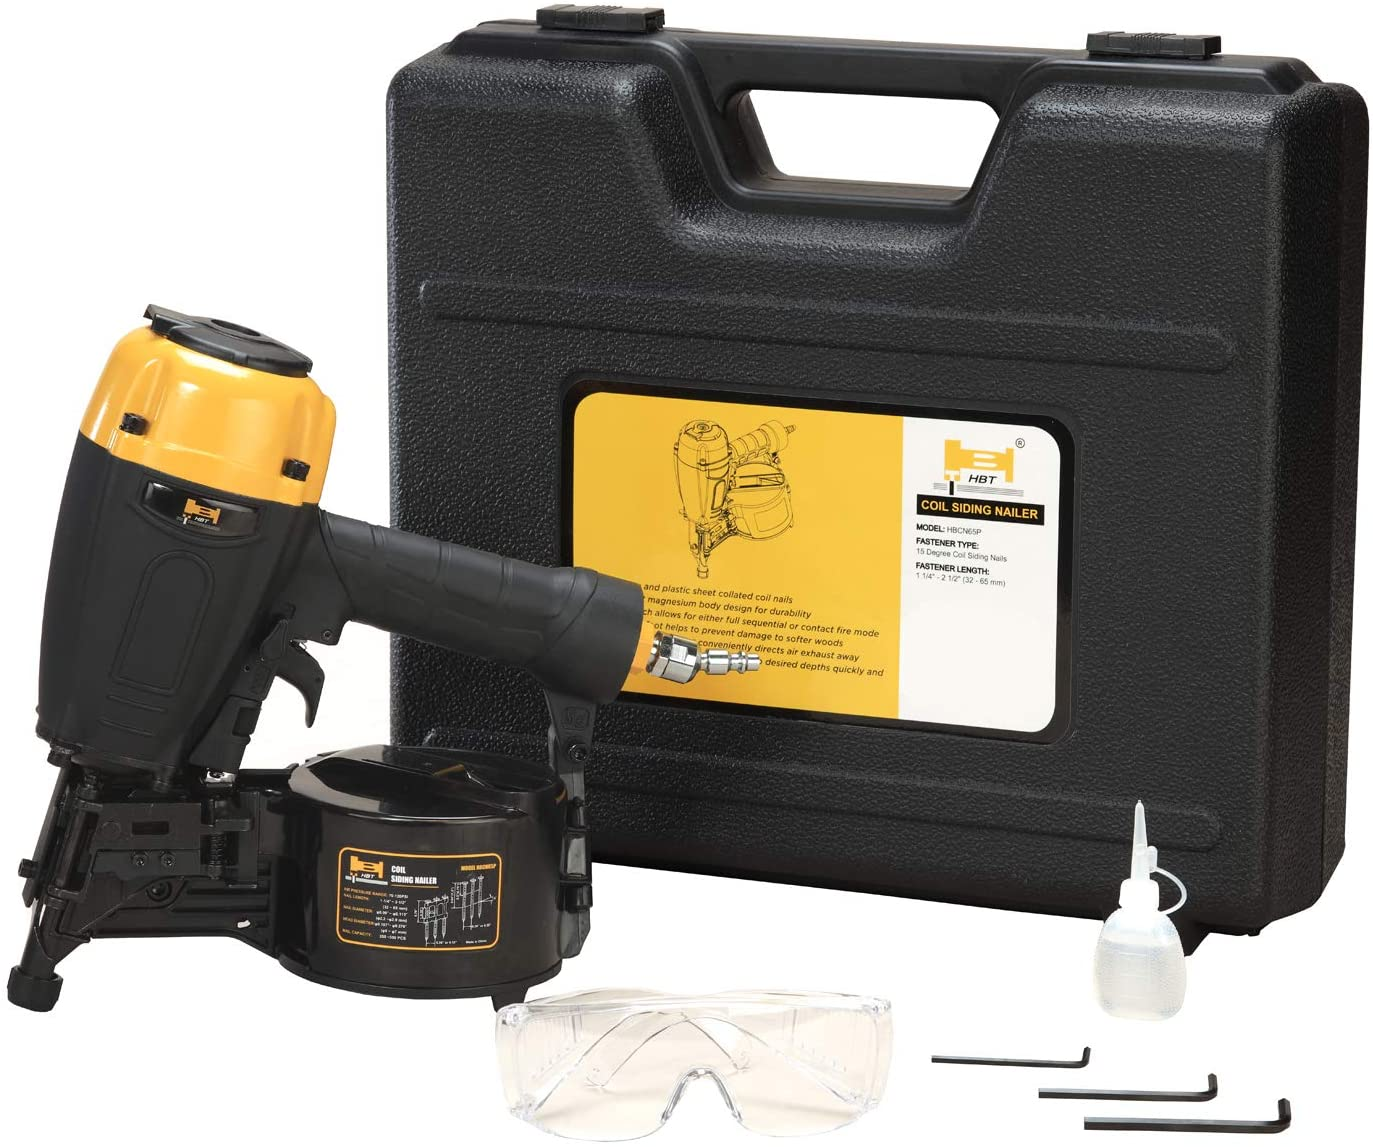 HBT HBCN65P 15 Degree 2-1/2-Inch Coil Siding Nailer with Magnesium Housing - -